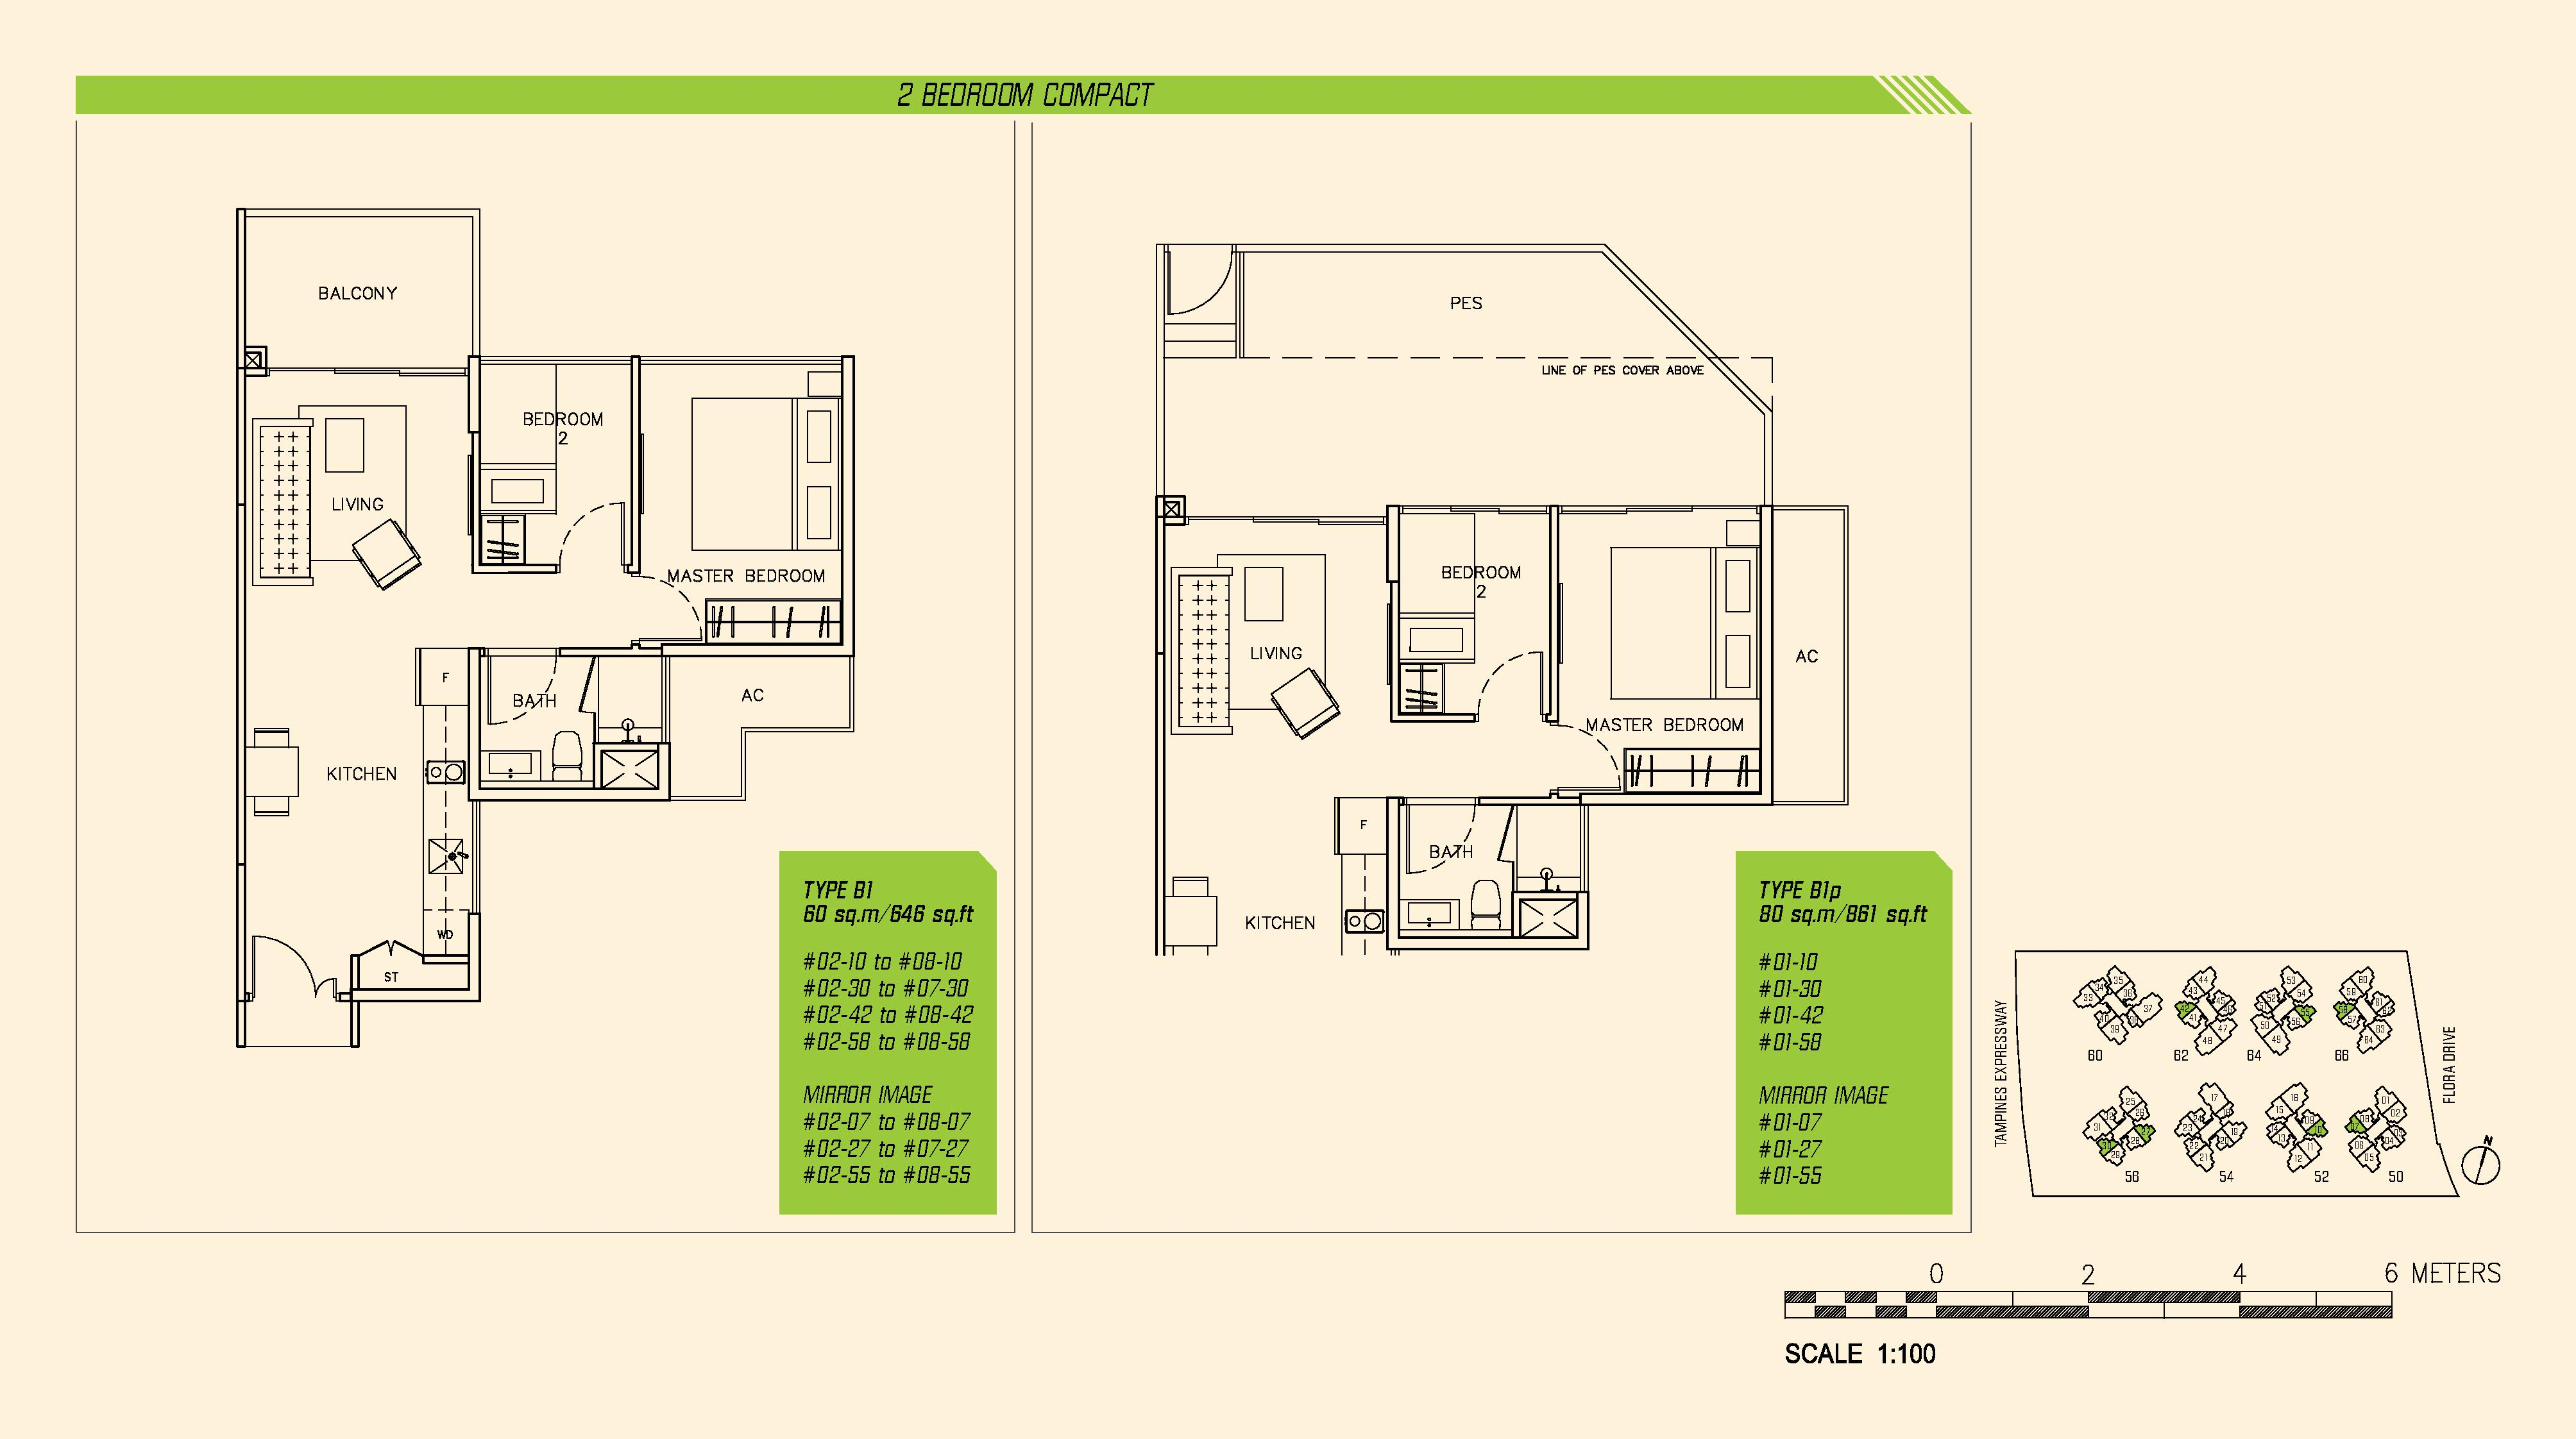 Parc Olympia 2 Bedroom Compact Floor Plans Type B1 and B1p